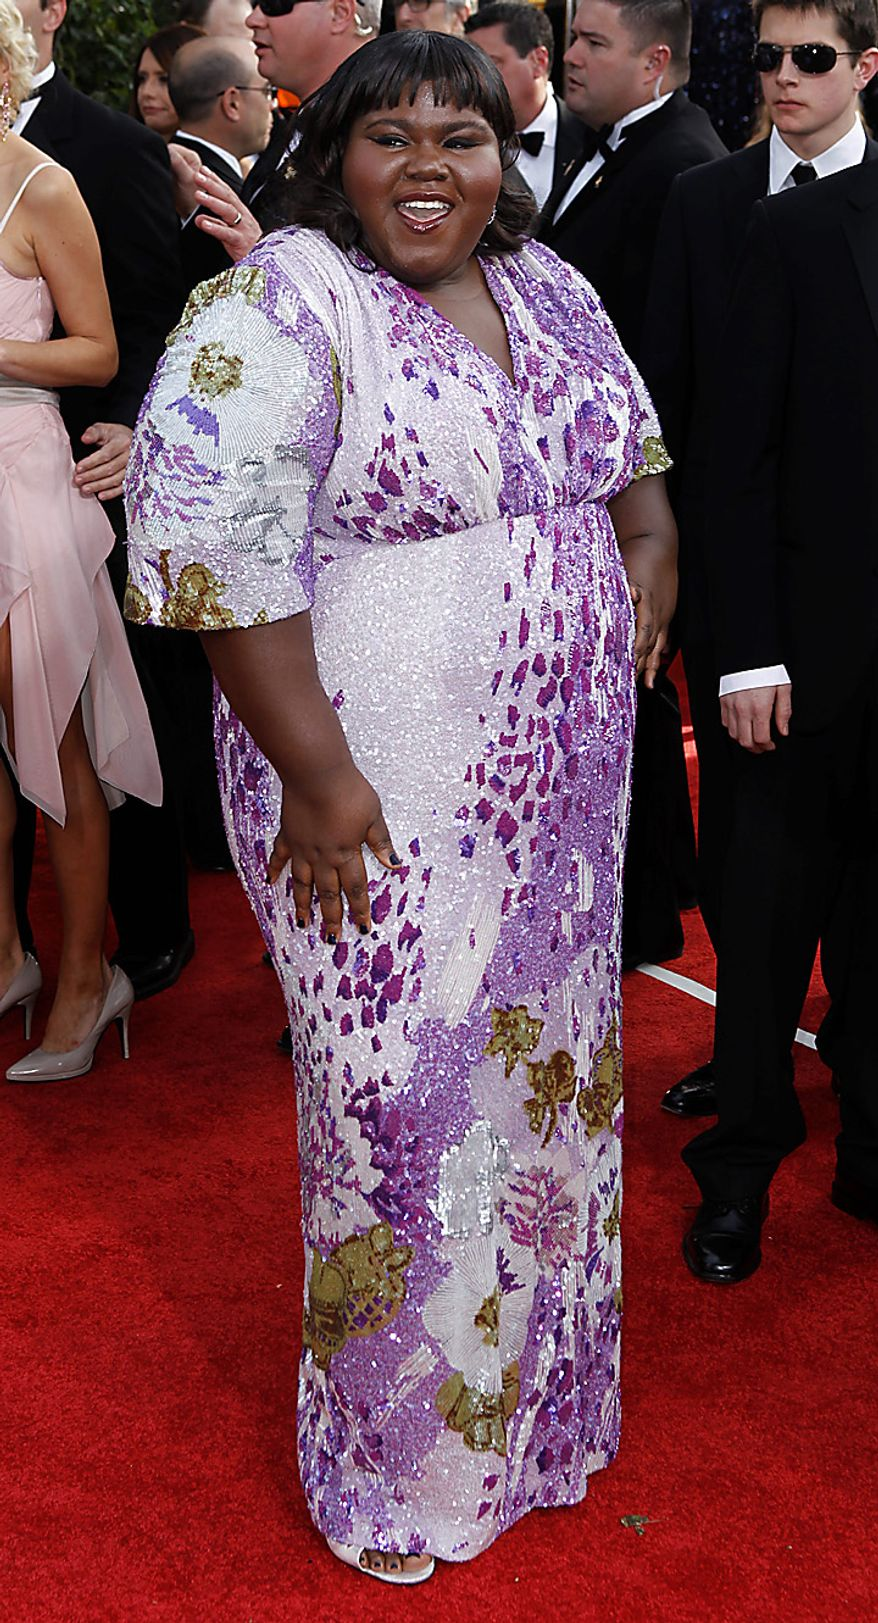 Gabourey Sidibe arrives for the Golden Globe Awards Sunday, Jan. 16, 2011, in Beverly Hills, Calif. (AP Photo/Matt Sayles)